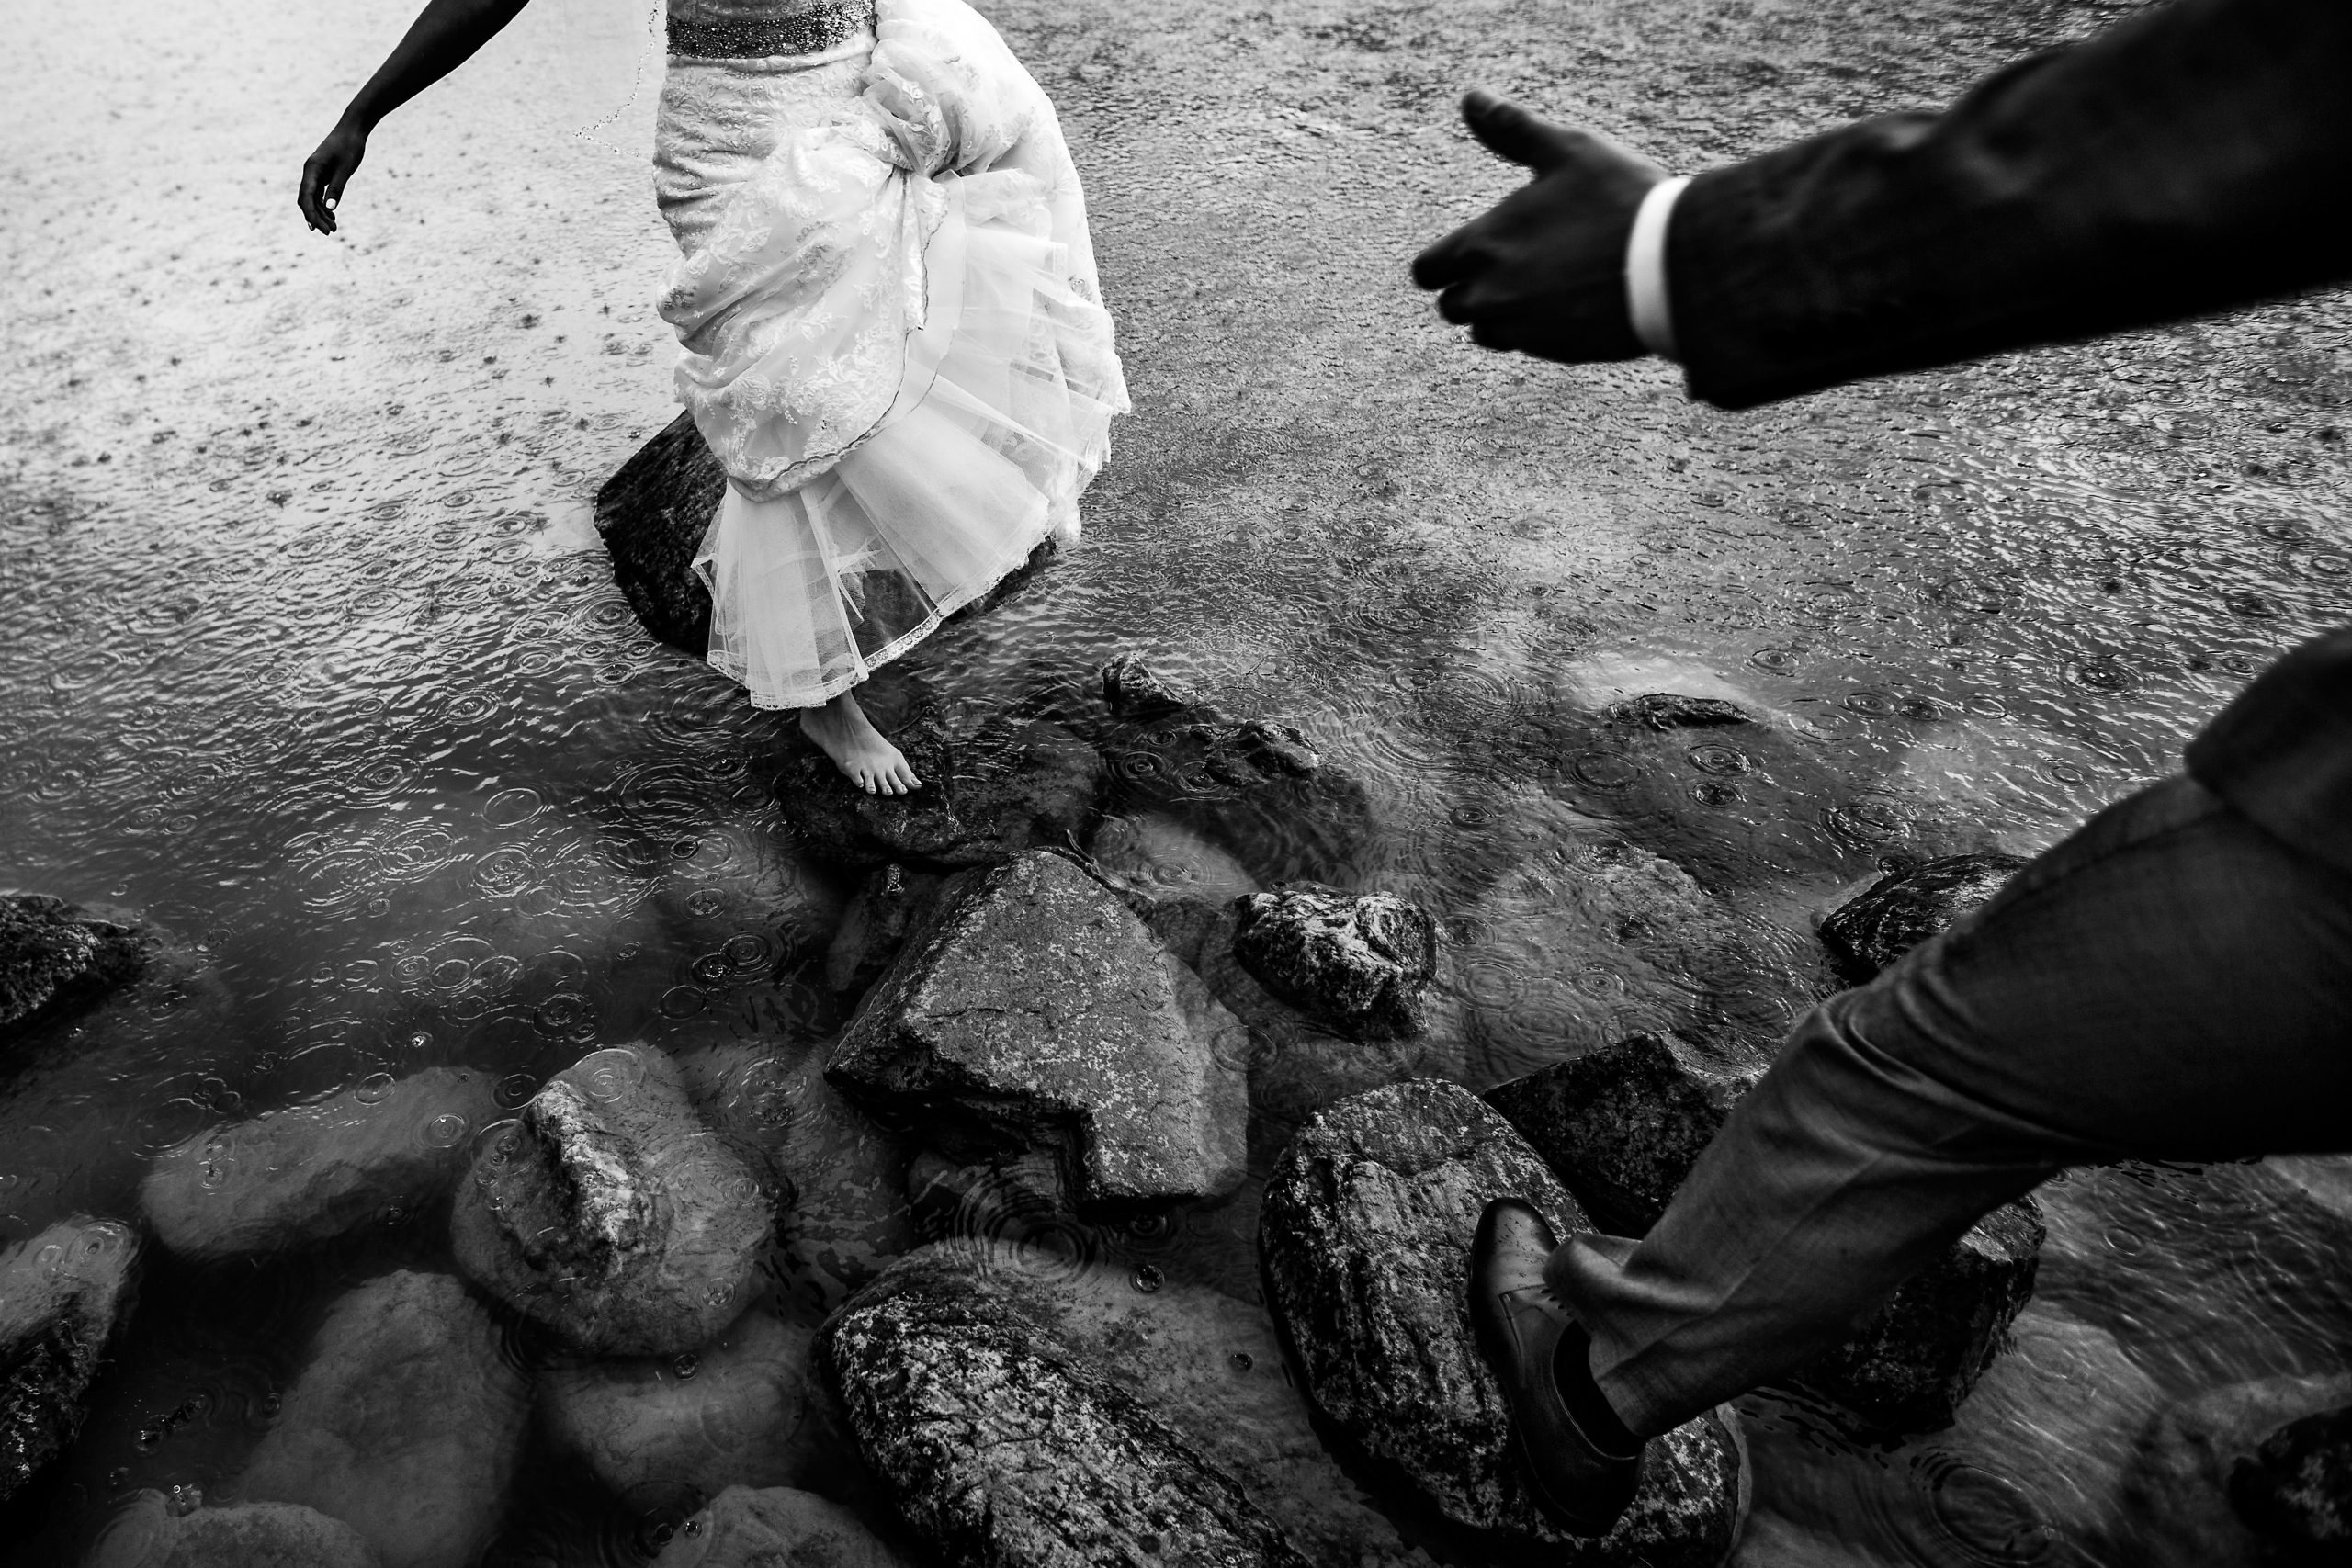 Man offers hand to help bride standing on lakeside rocks as rain drops hit the water